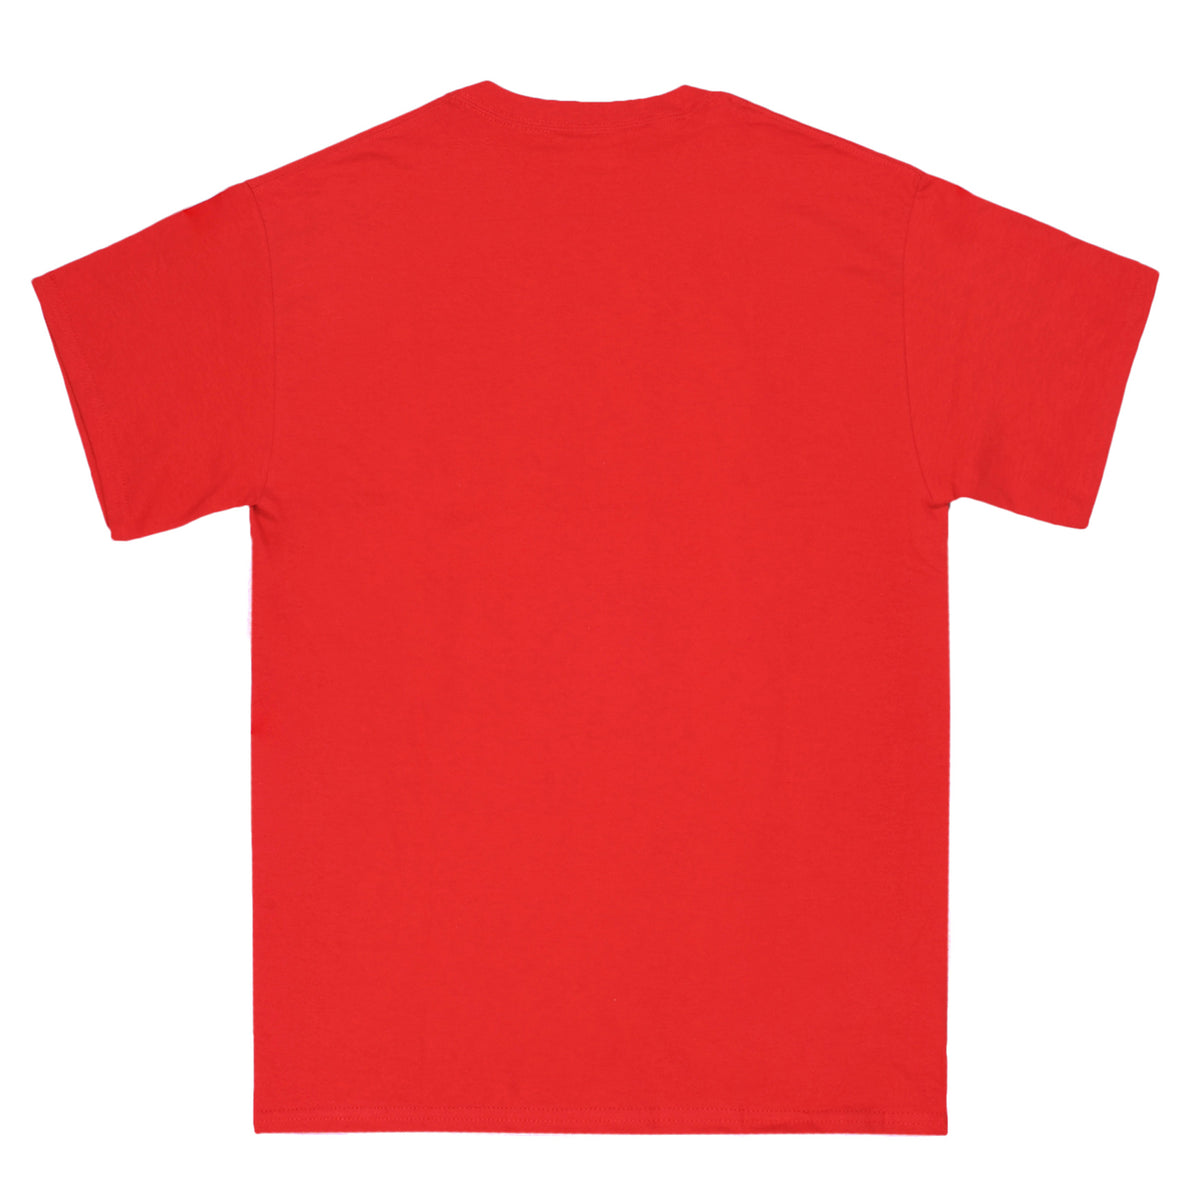 TOYS RAVE red tee - RAVE skateboards